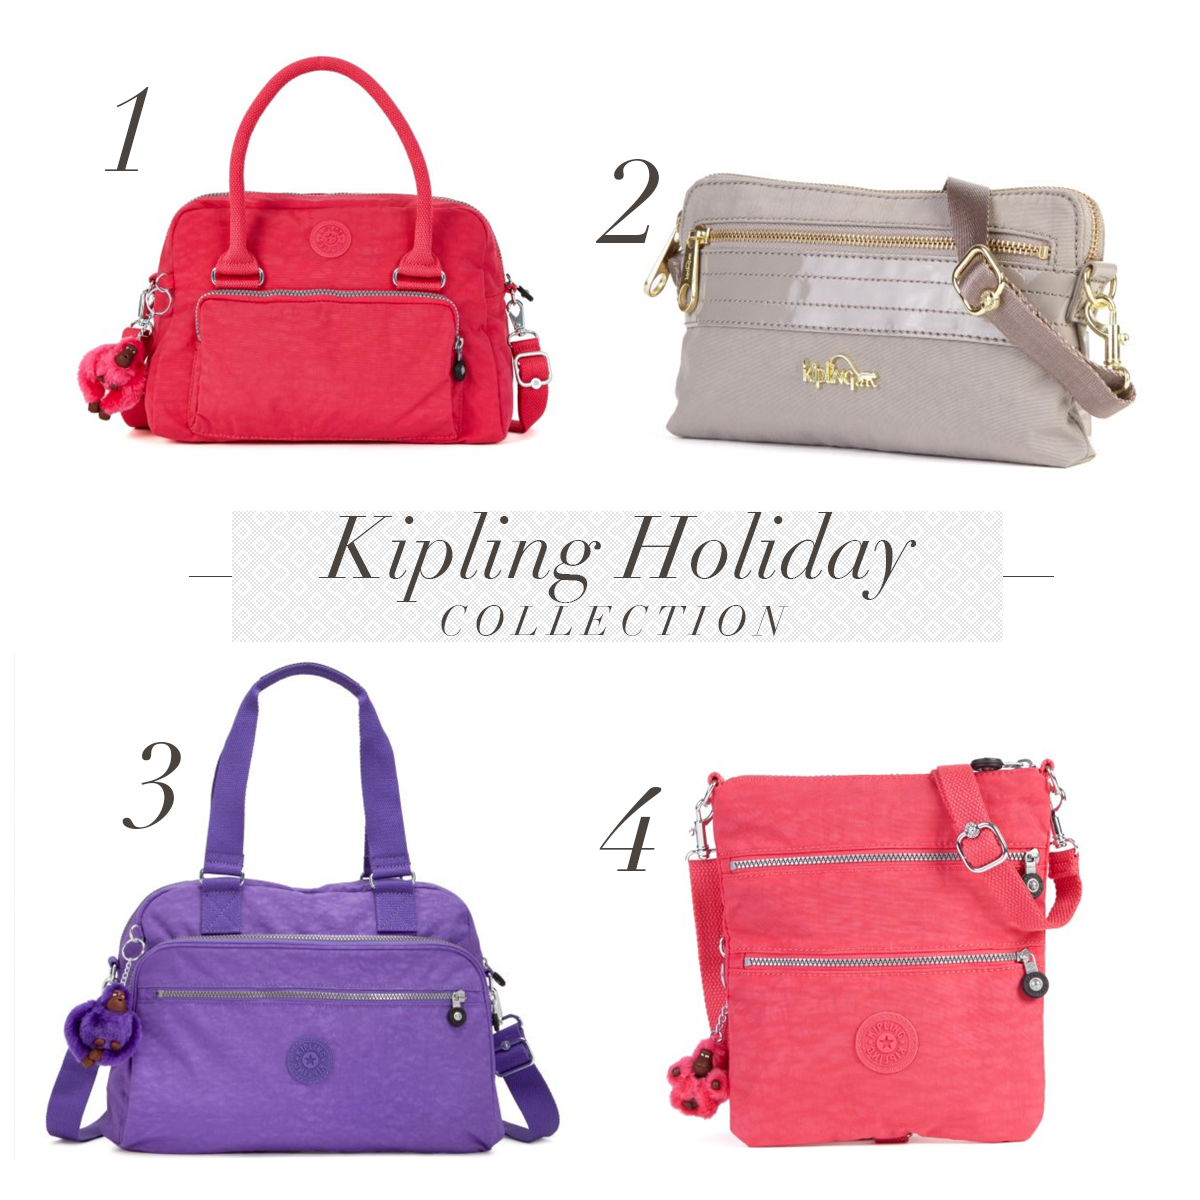 Kipling holiday tour